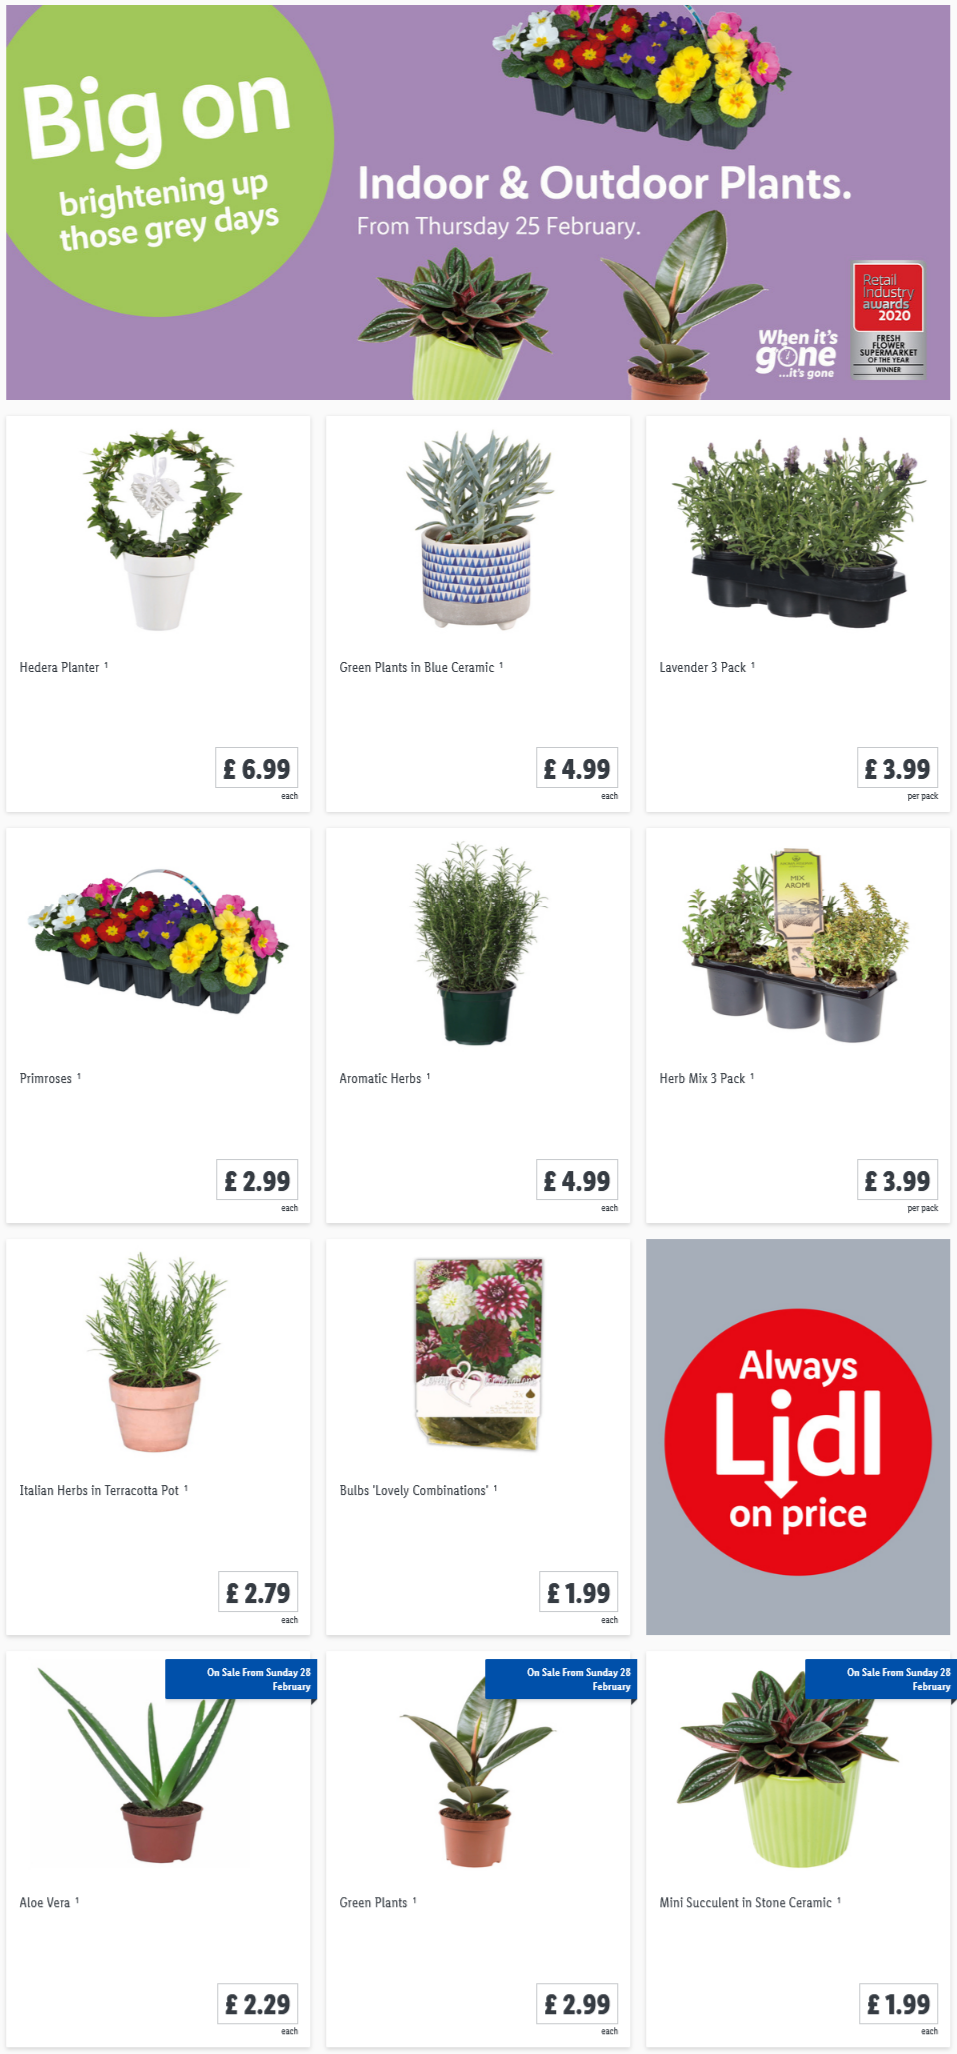 Preview LIDL Indoor & Outdoor Plants Offers for your garden valid from 25/2/2021